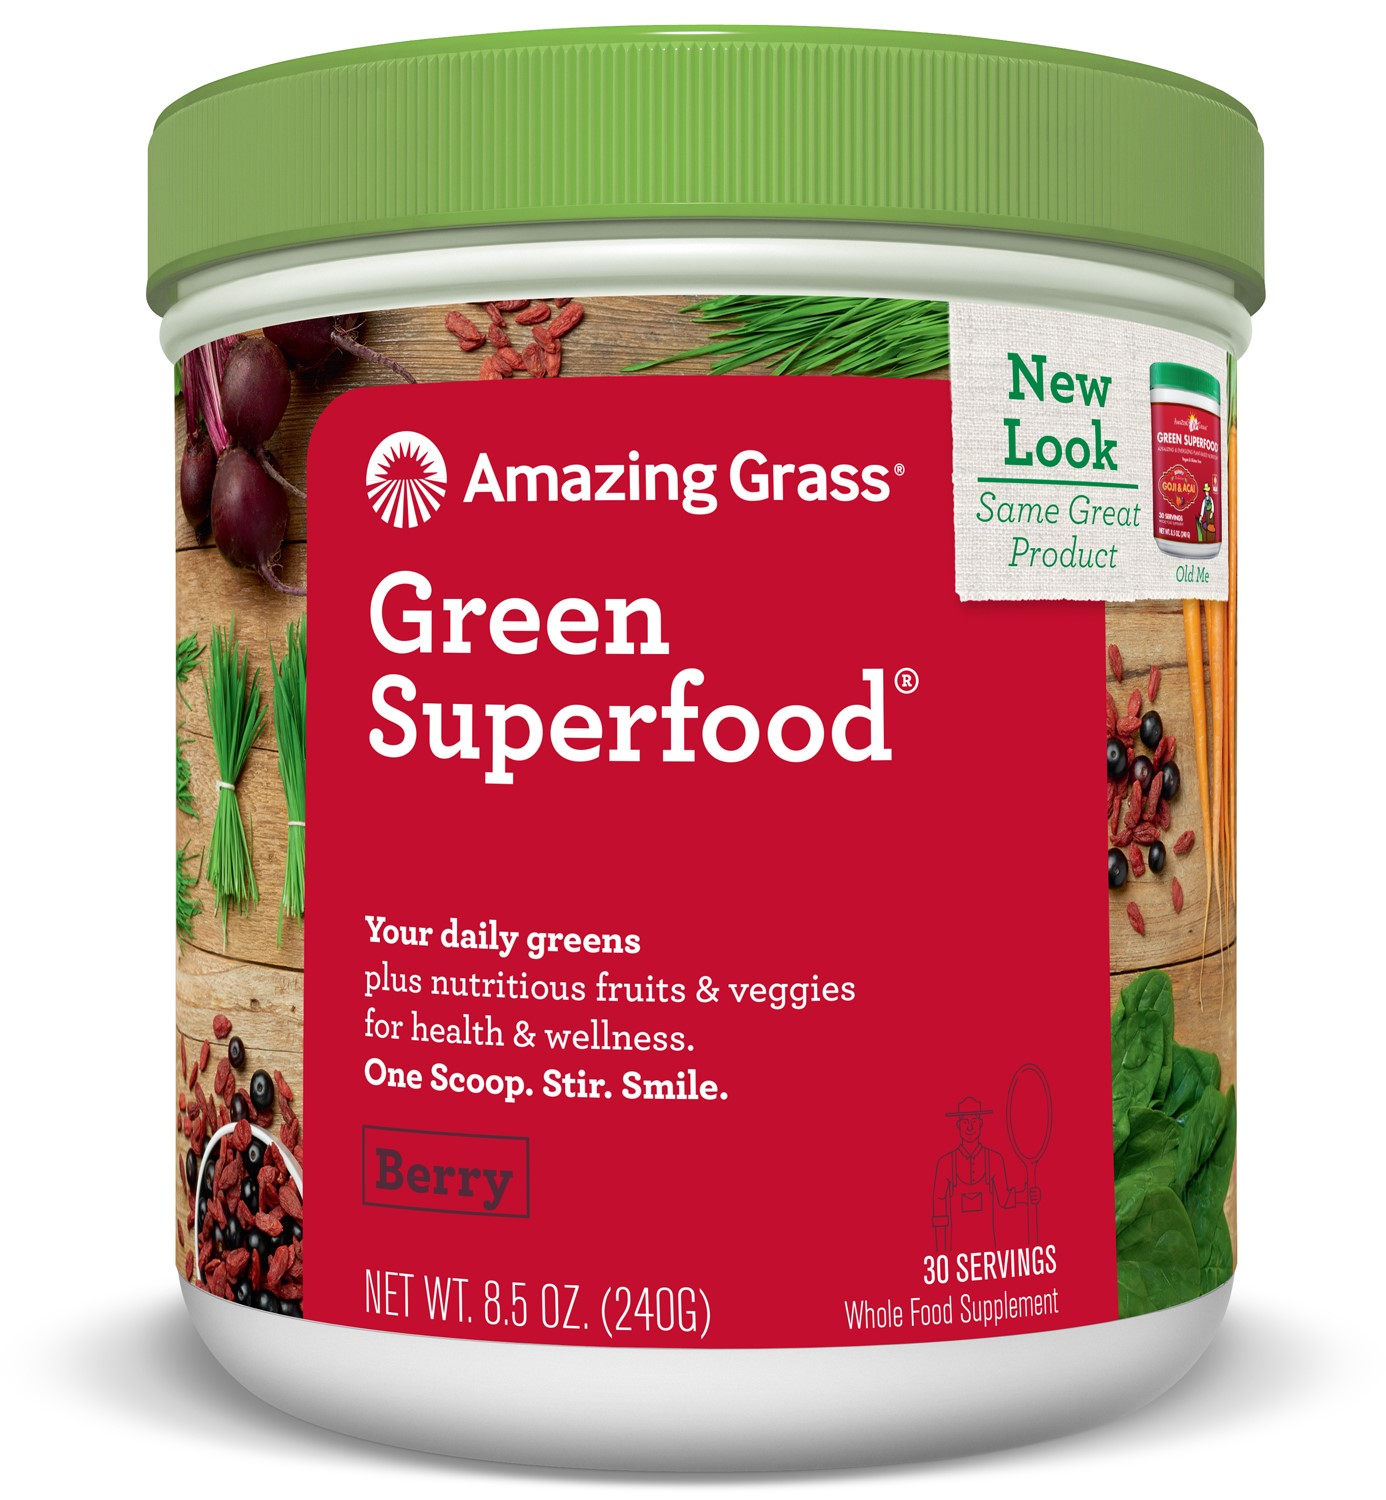 Amazing Grass Green Superfood Powder, Berry, 30 Servings